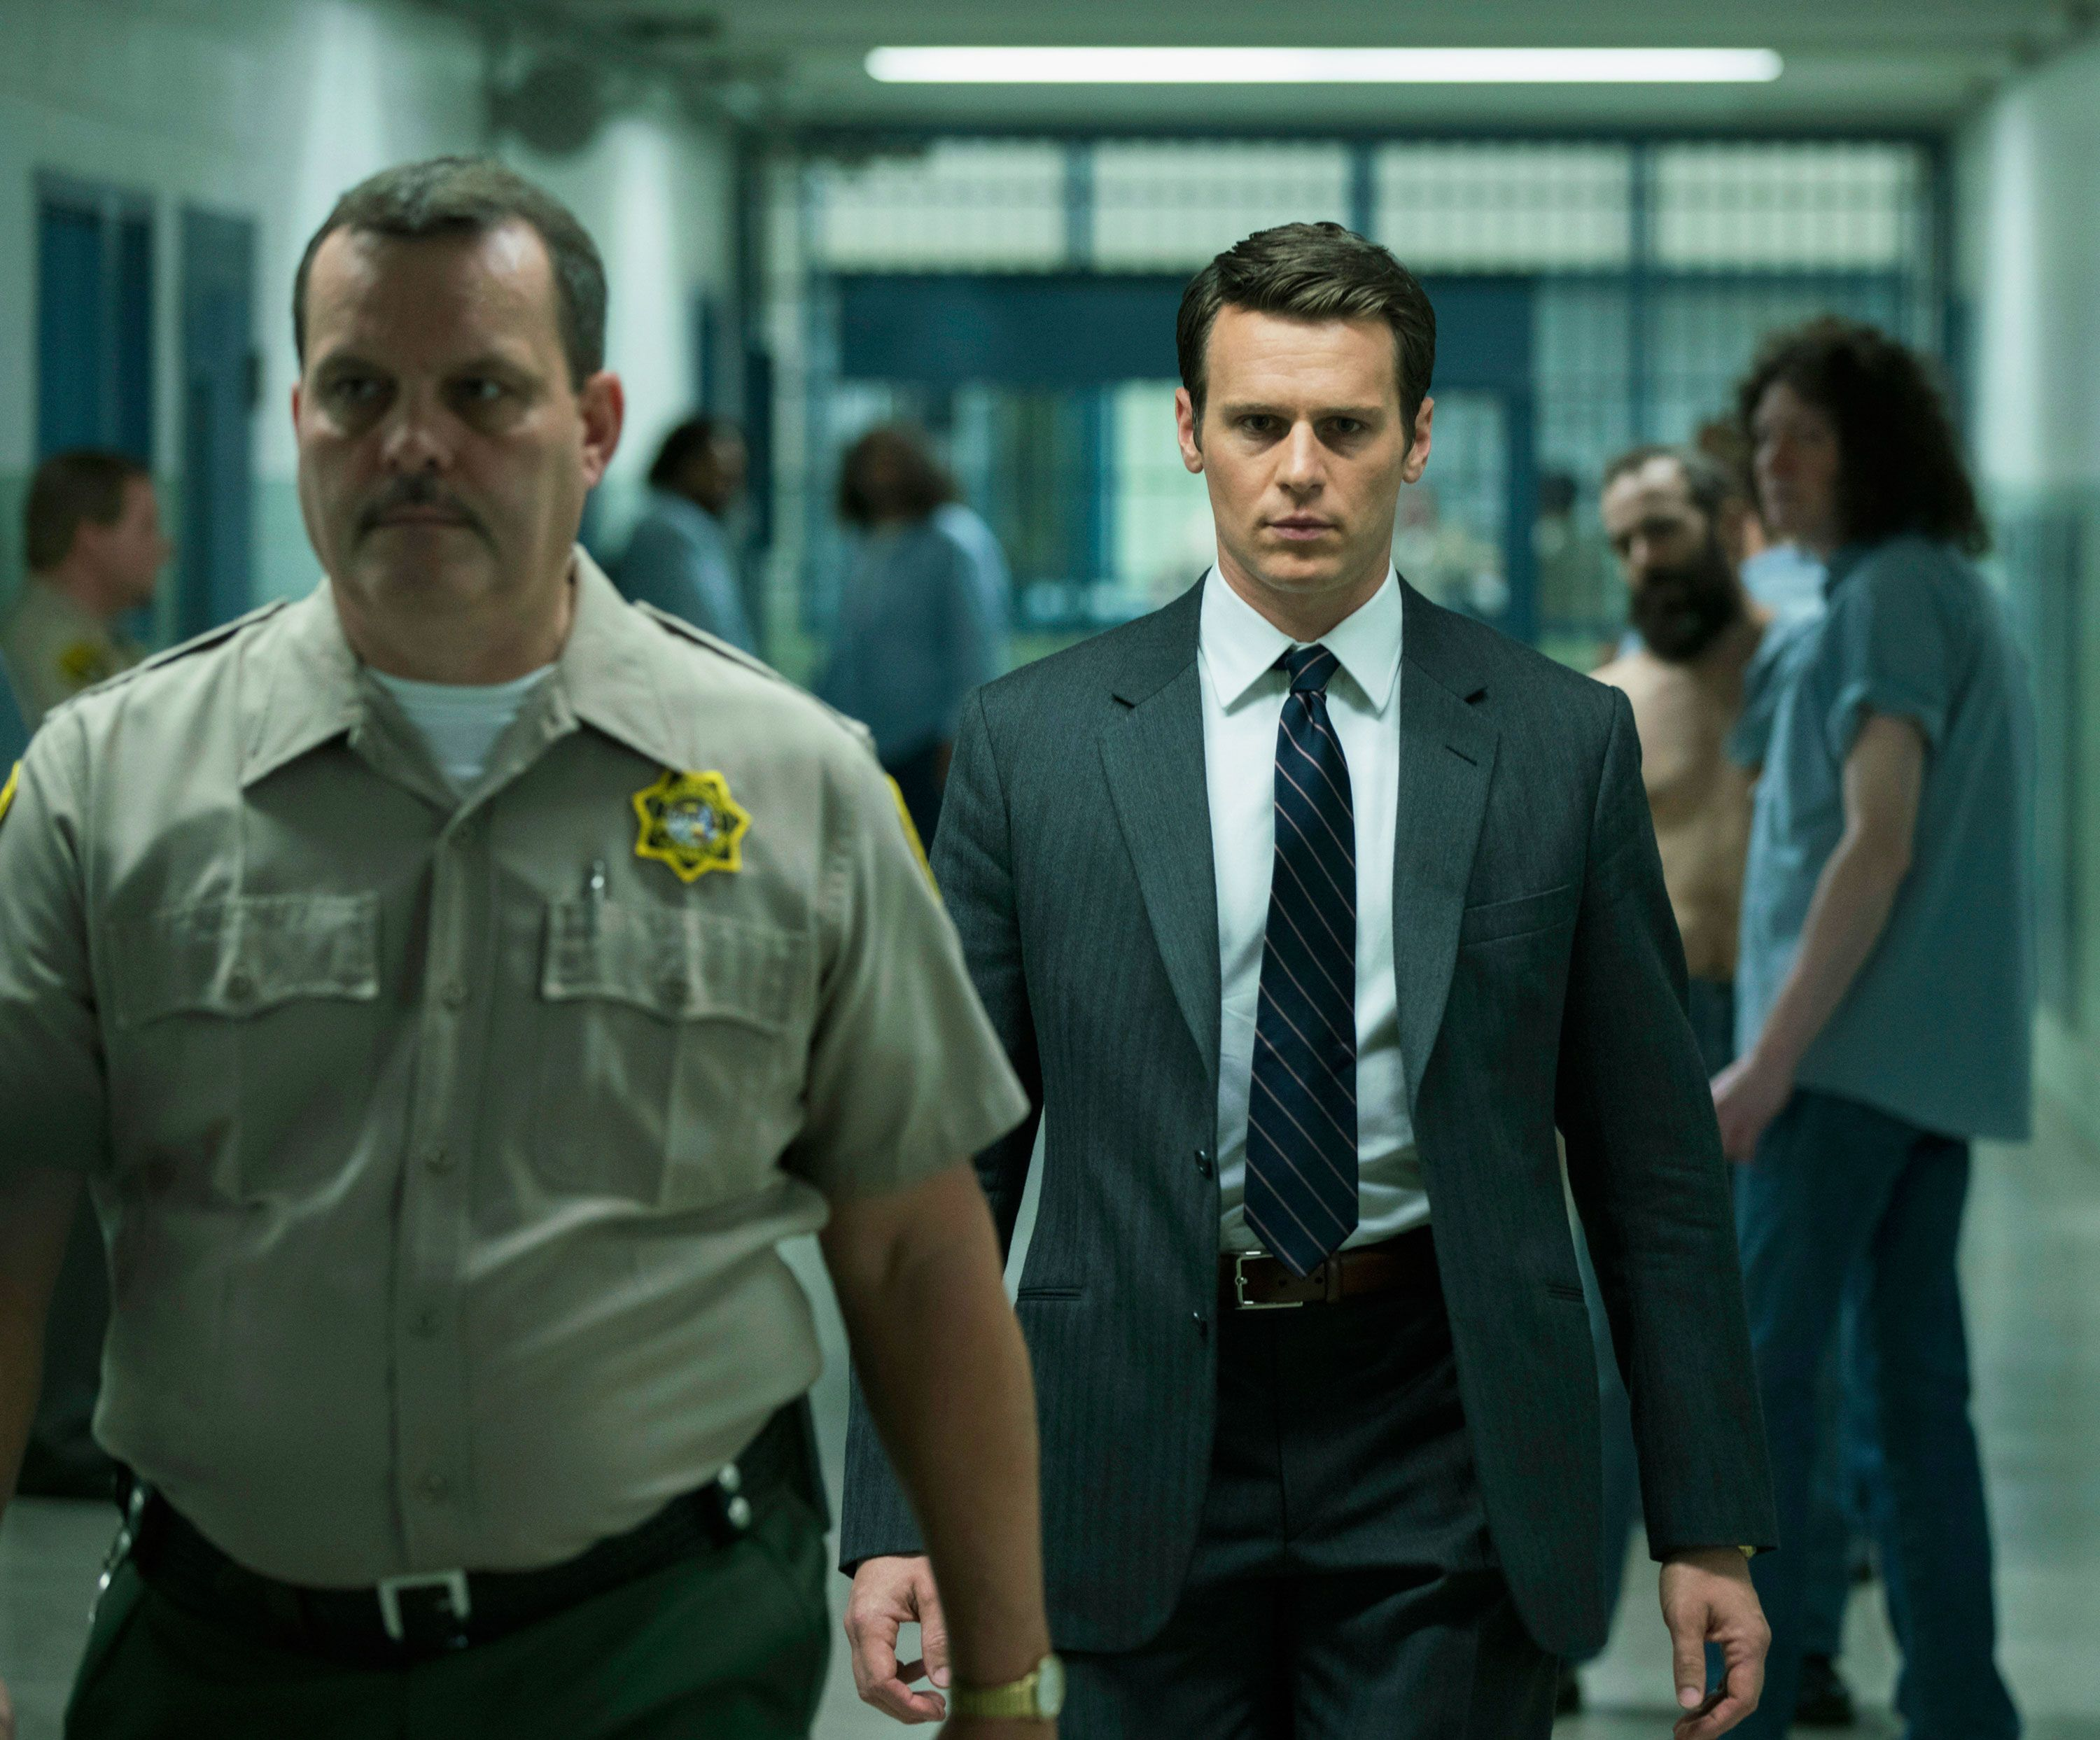 Mindhunter Season 2 Spoilers, Air Date, Cast News and More